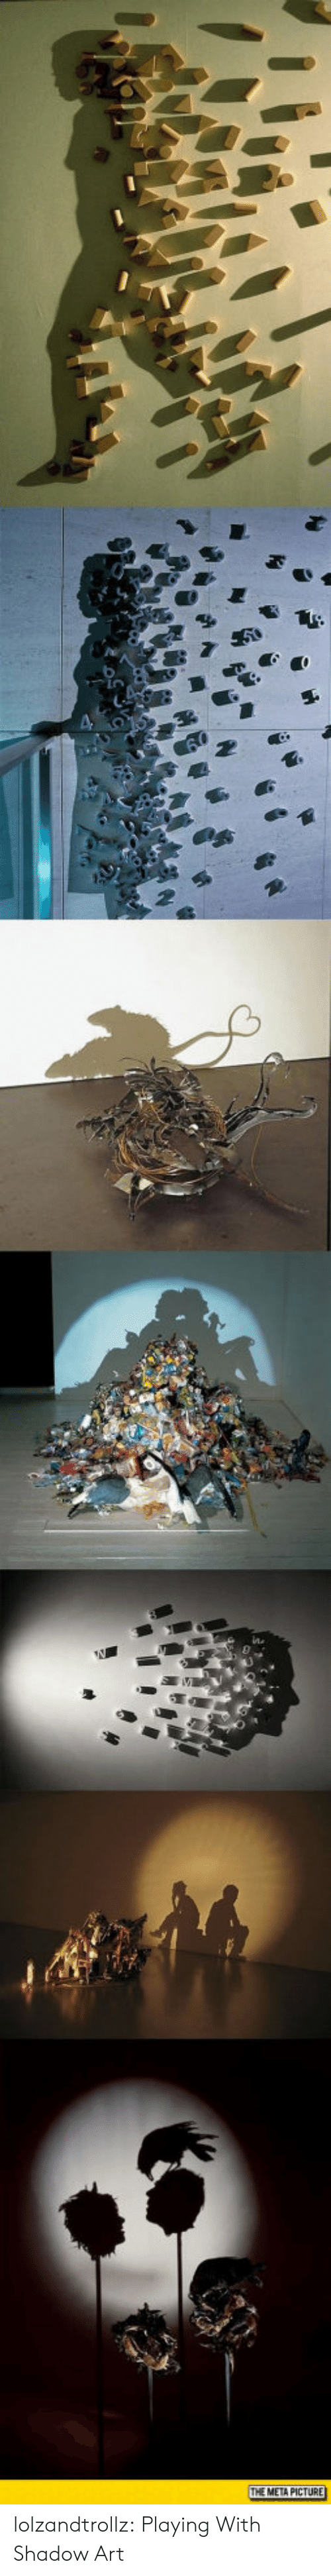 Metas: THE META PICTURE lolzandtrollz:  Playing With Shadow Art